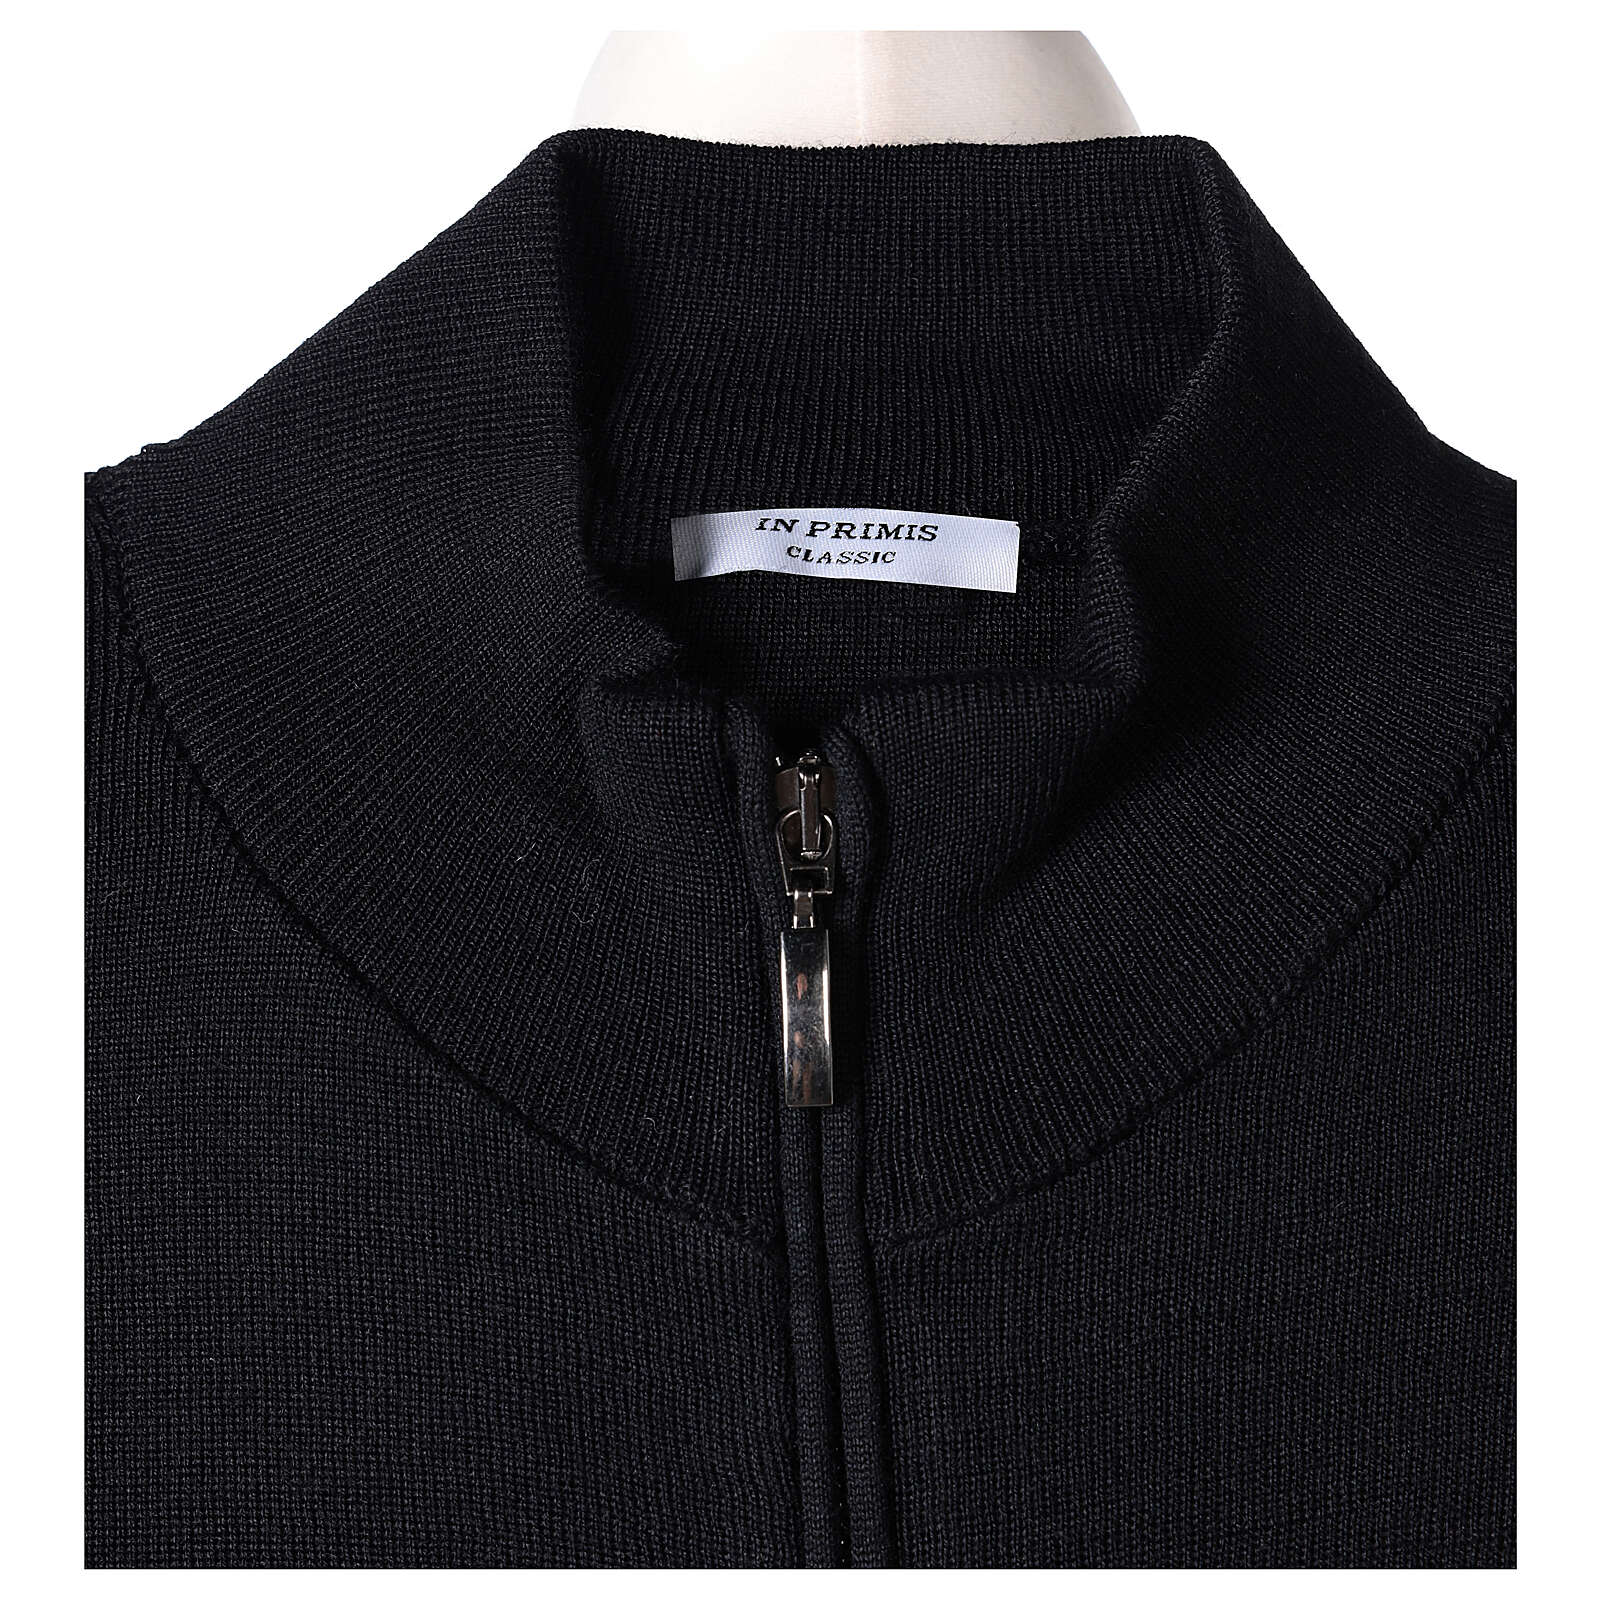 Black nun jacket with mandarin collar and zip 50% acrylic 50% merino wool In Primis 4